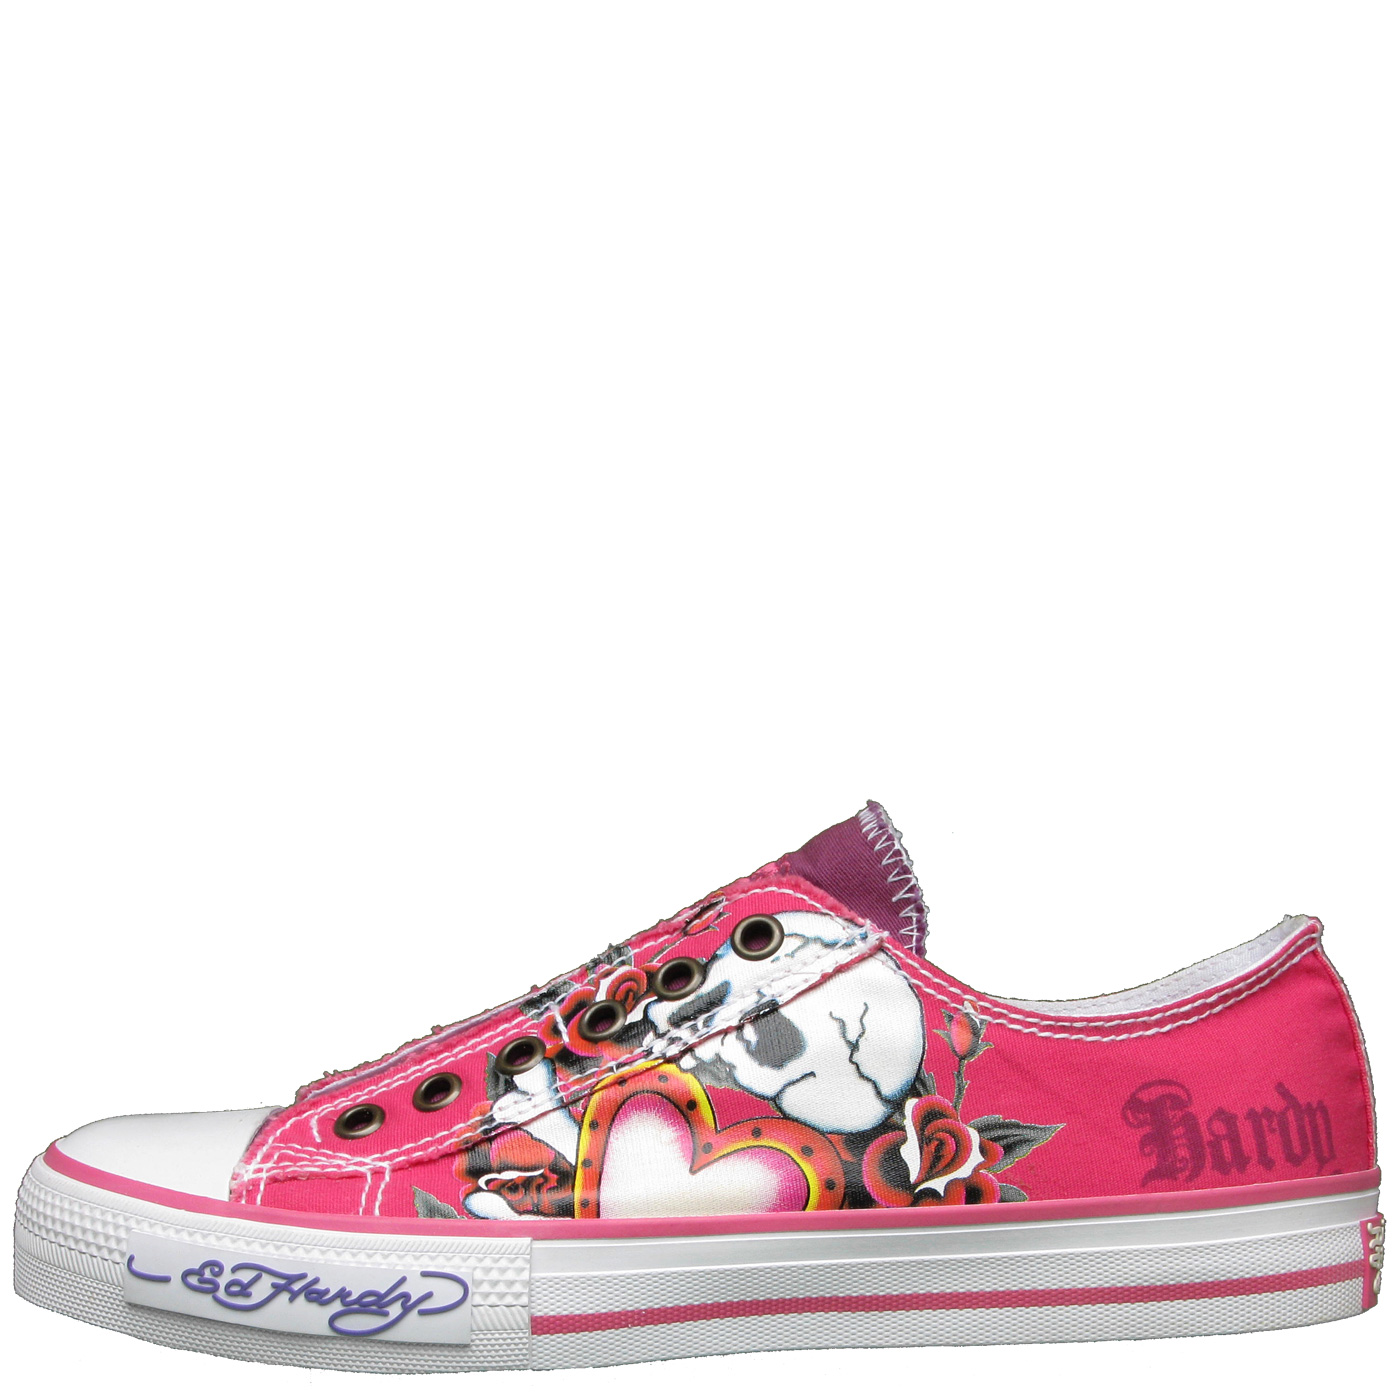 Ed Hardy Lowrise 100 Shoe for Women - Fuschia